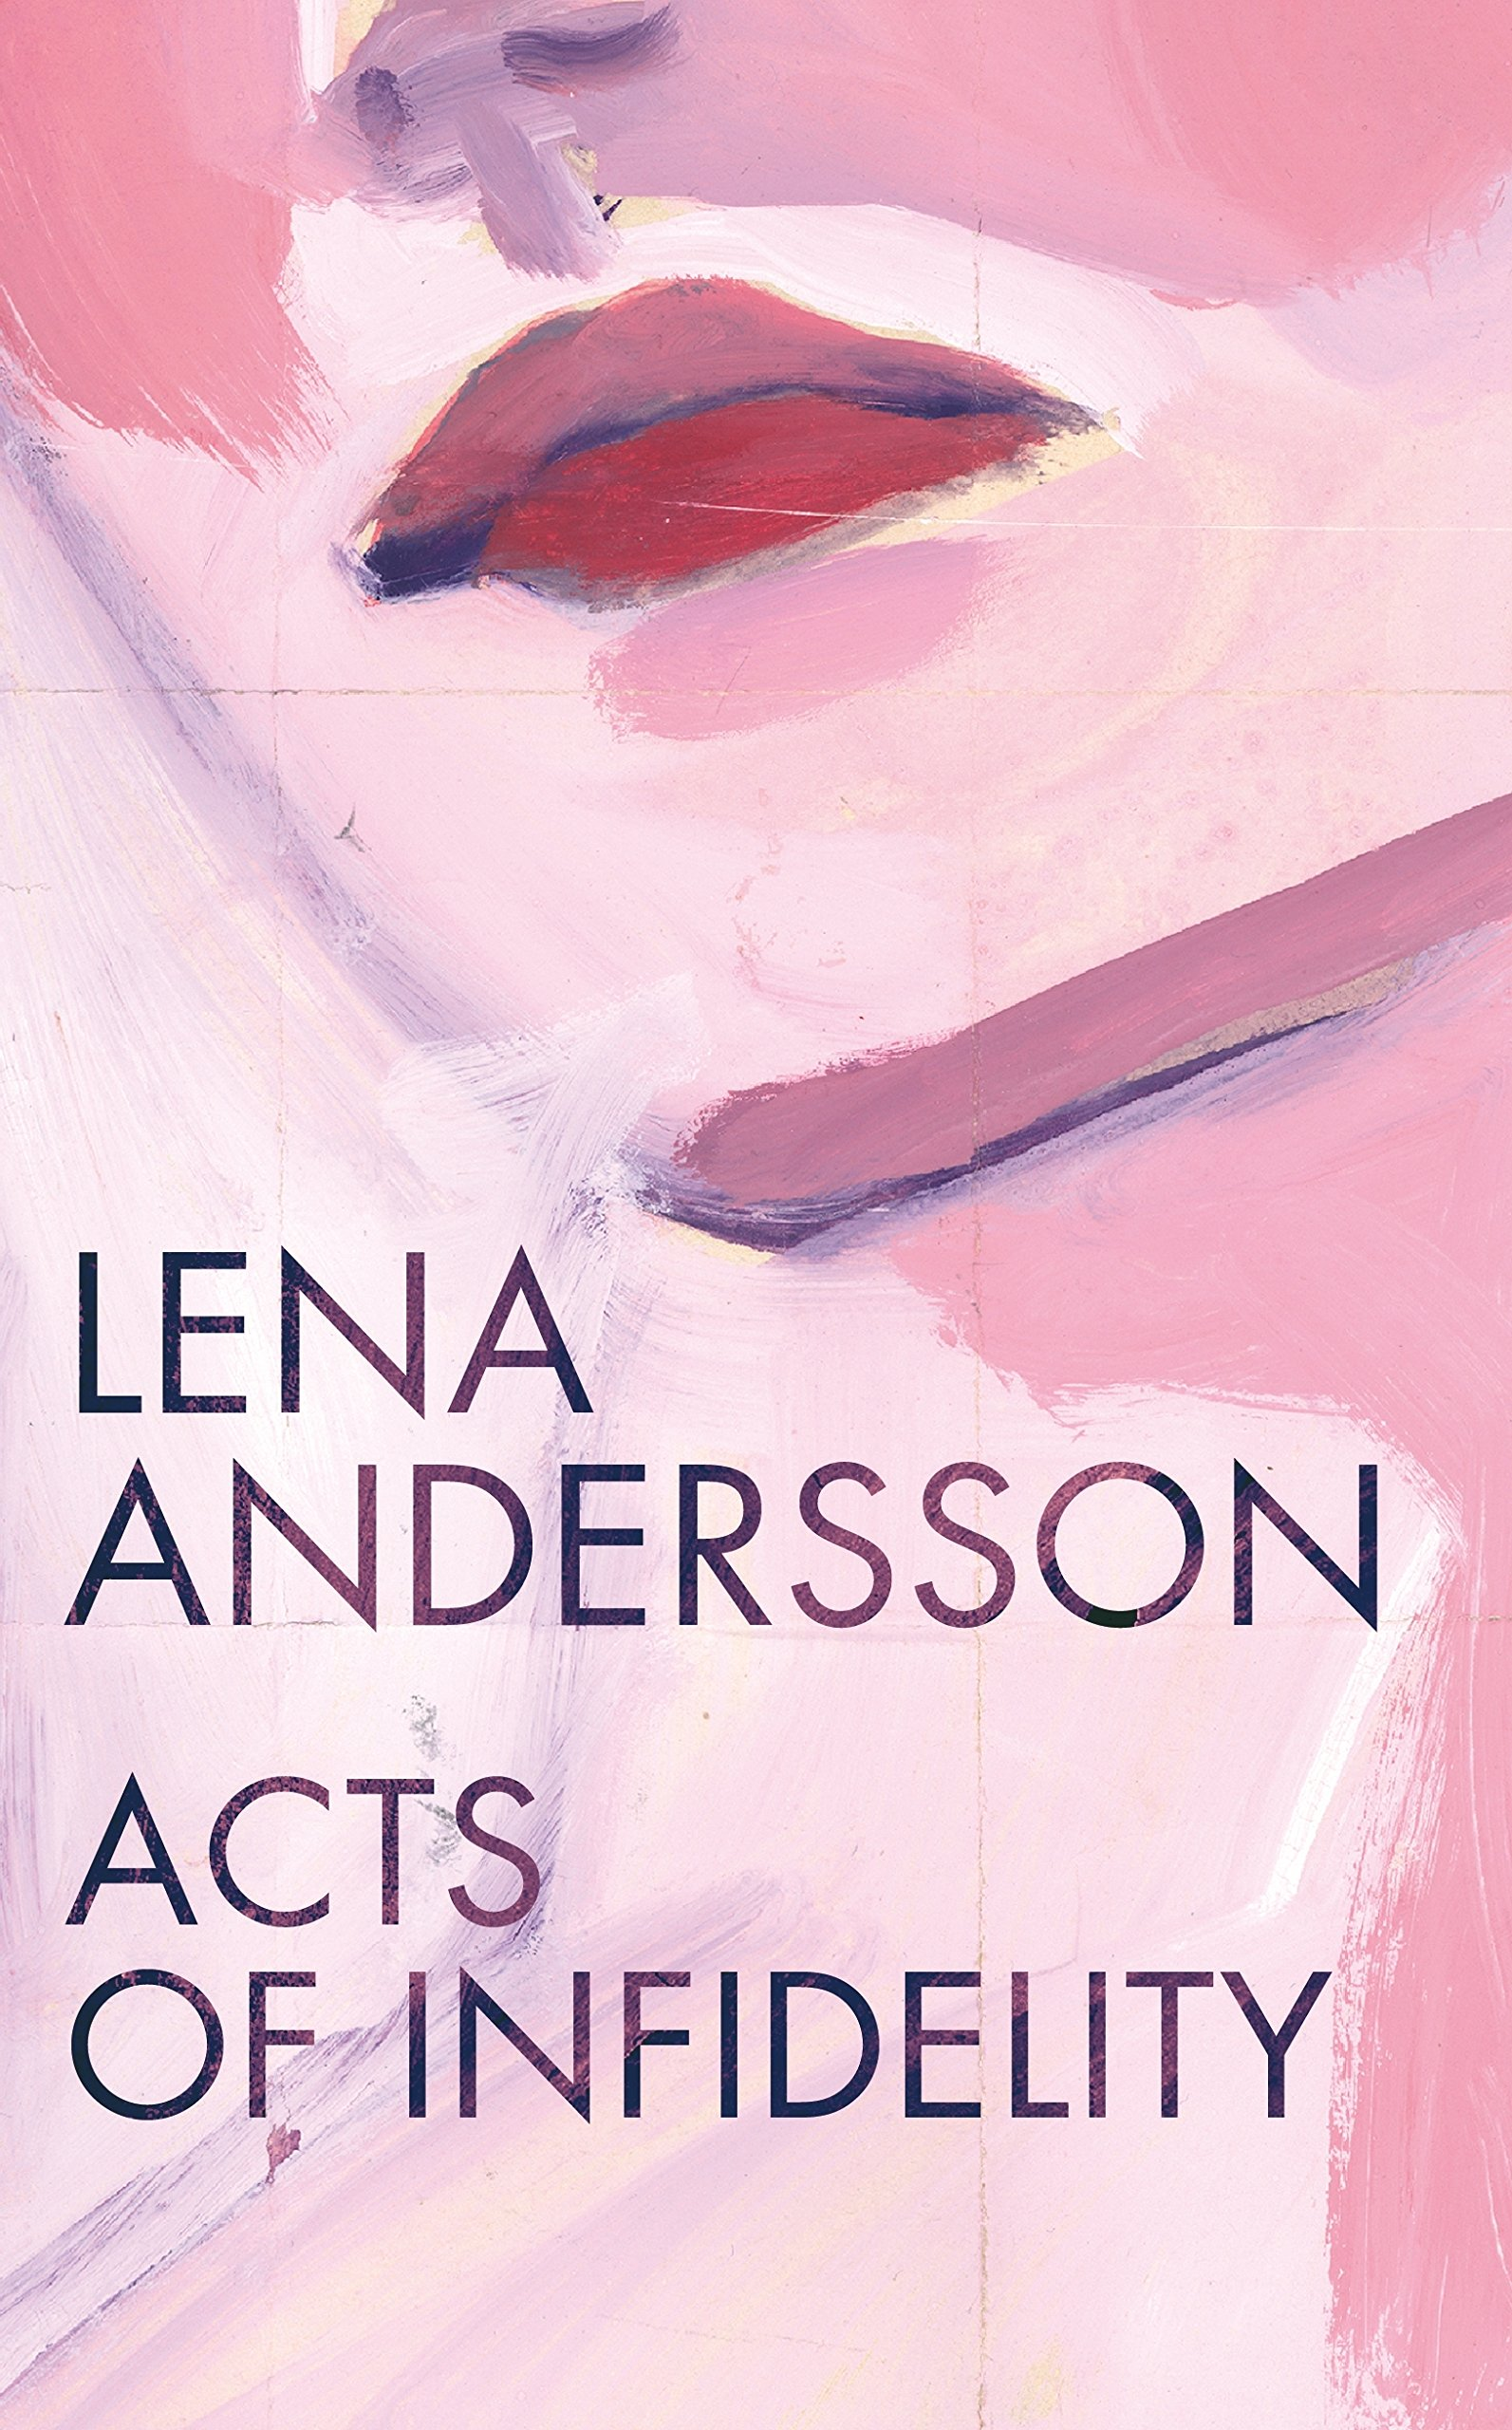 Image result for lena andersson acts of infidelity